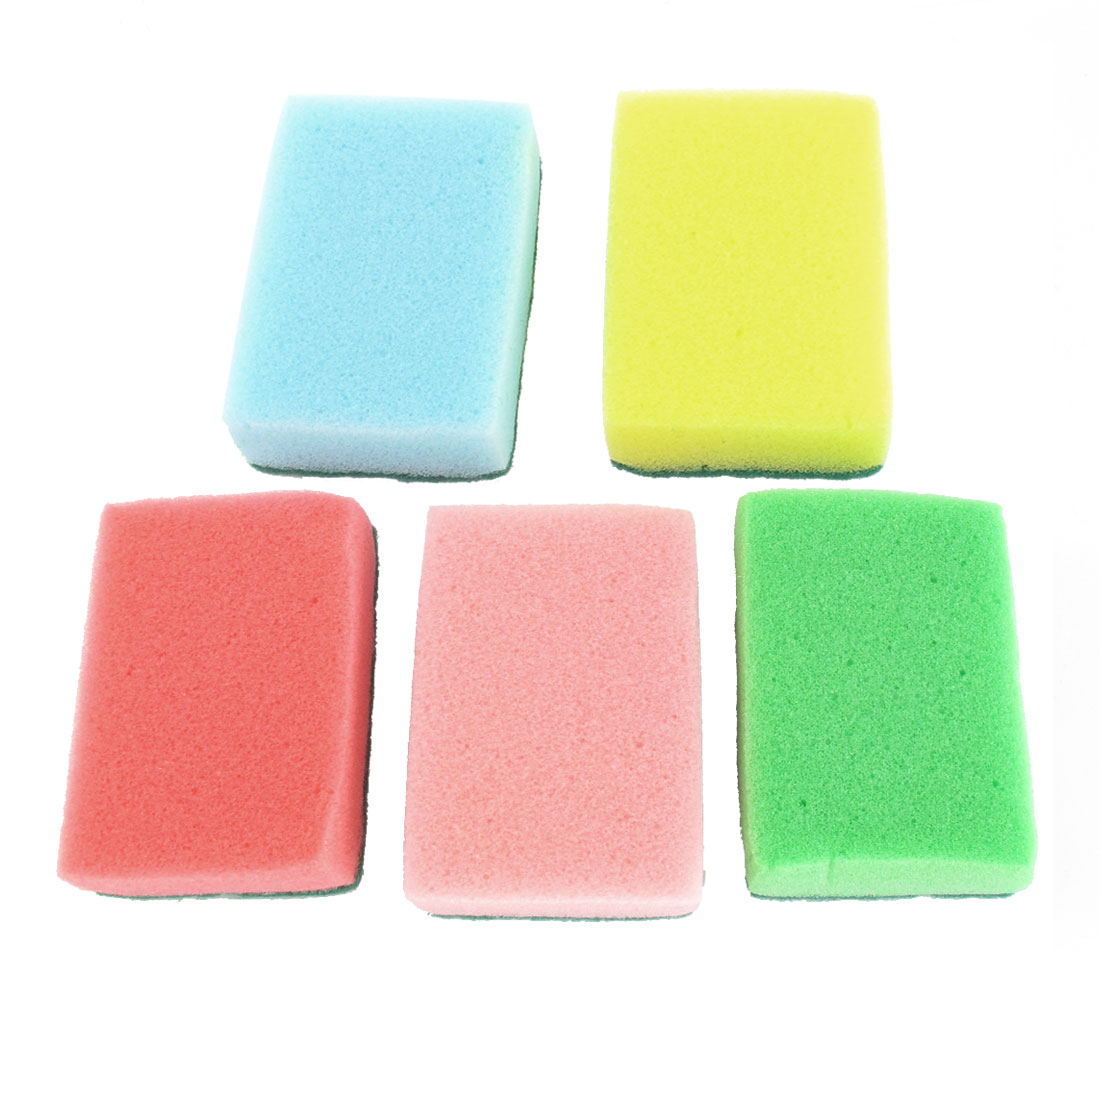 Kitchen Multicolors Rectangle Shape Soft Sponge Dish Pot Cleaner Scrub Pads 5 Pcs